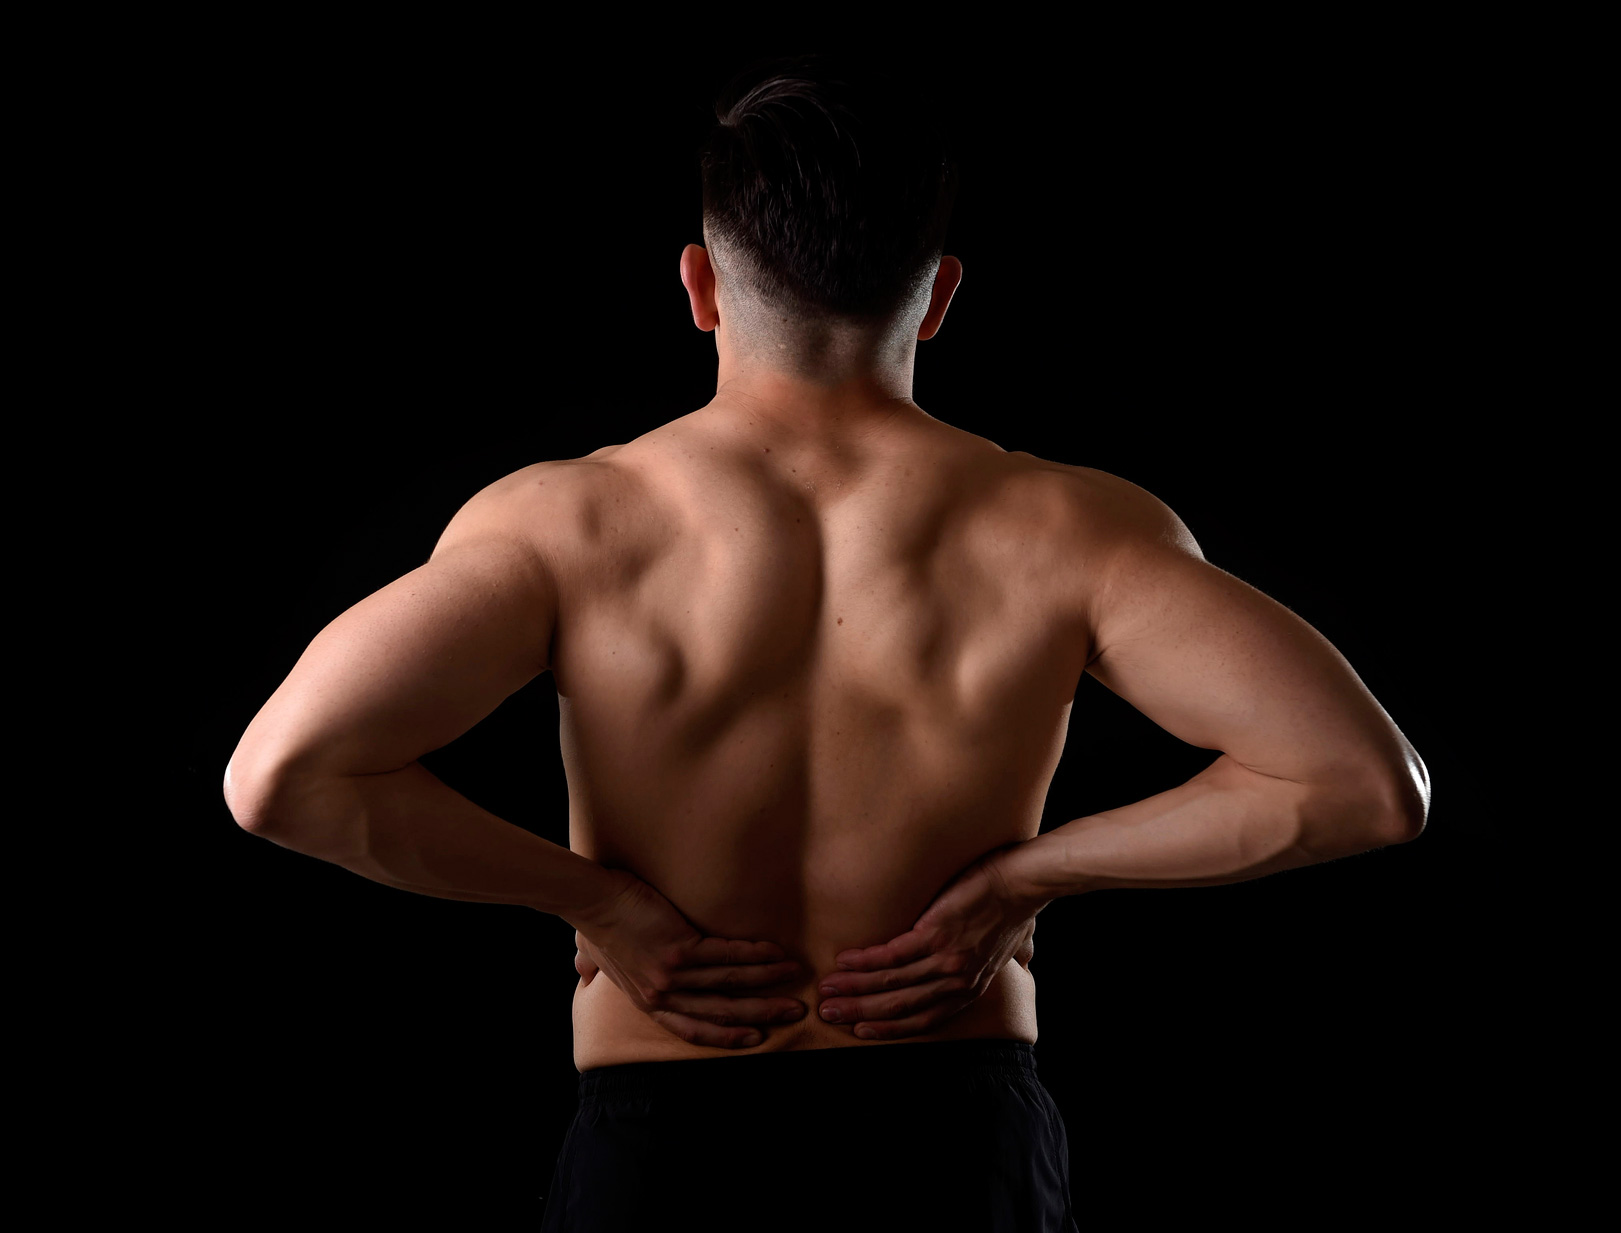 photodune-15841375-young-muscular-body-sport-man-holding-sore-low-back-waist-are-suffering-pain-in-athlete-stress-07-m.jpg